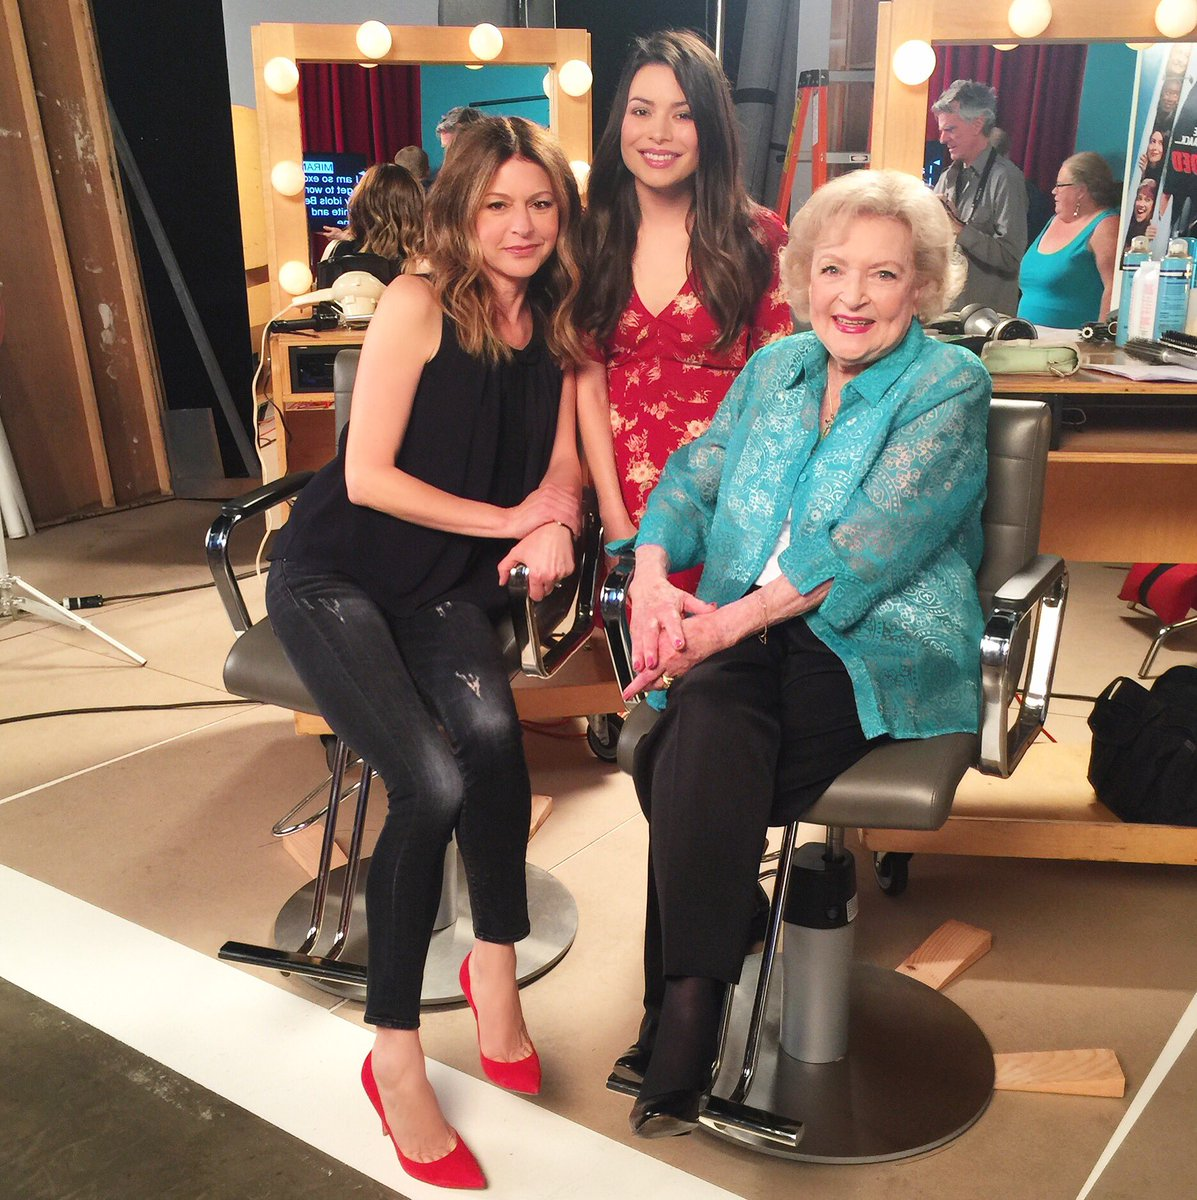 Reunited and it feels so good... Love @MirandaCosgrove and @BettyMWhite ❤️ https://t.co/KQGOfCQX7n